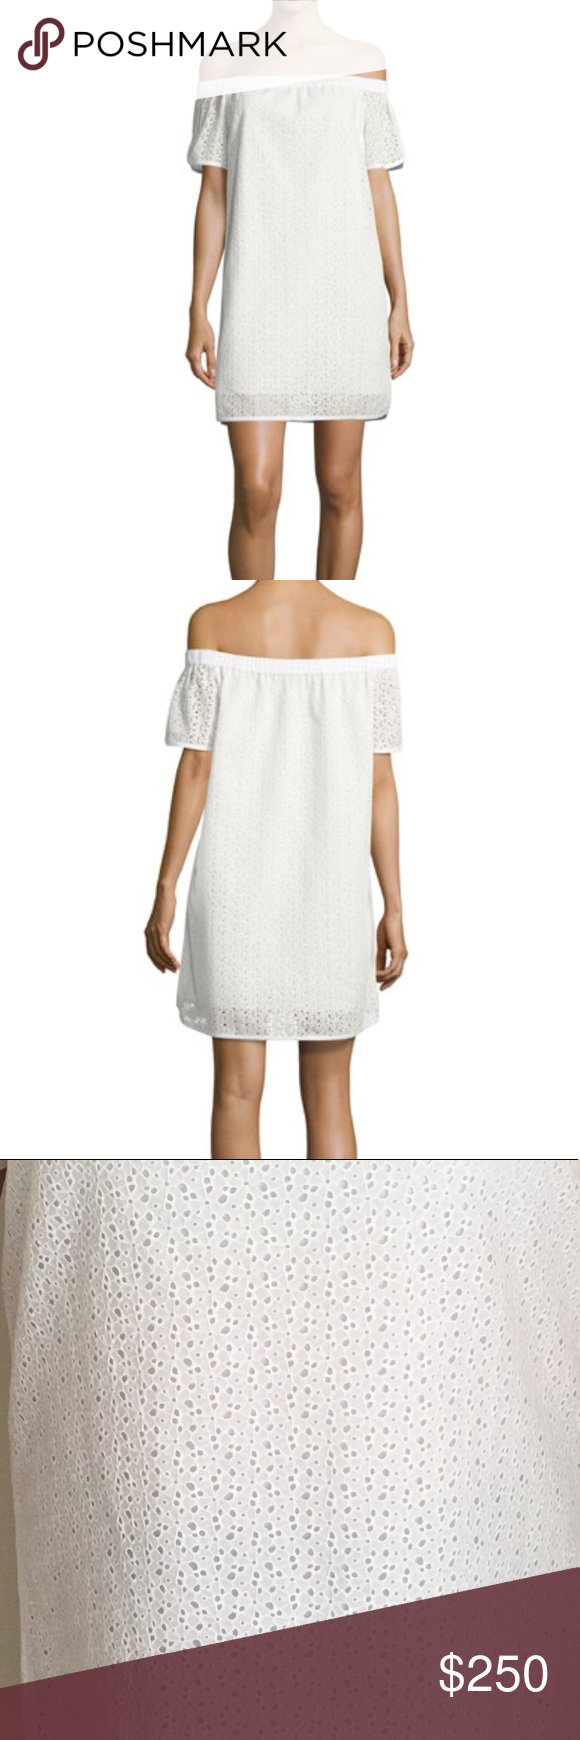 ed53a634c80bd7 Rag Bone Flavia Lace Off-the-Shoulder White Dress Rag   Bone